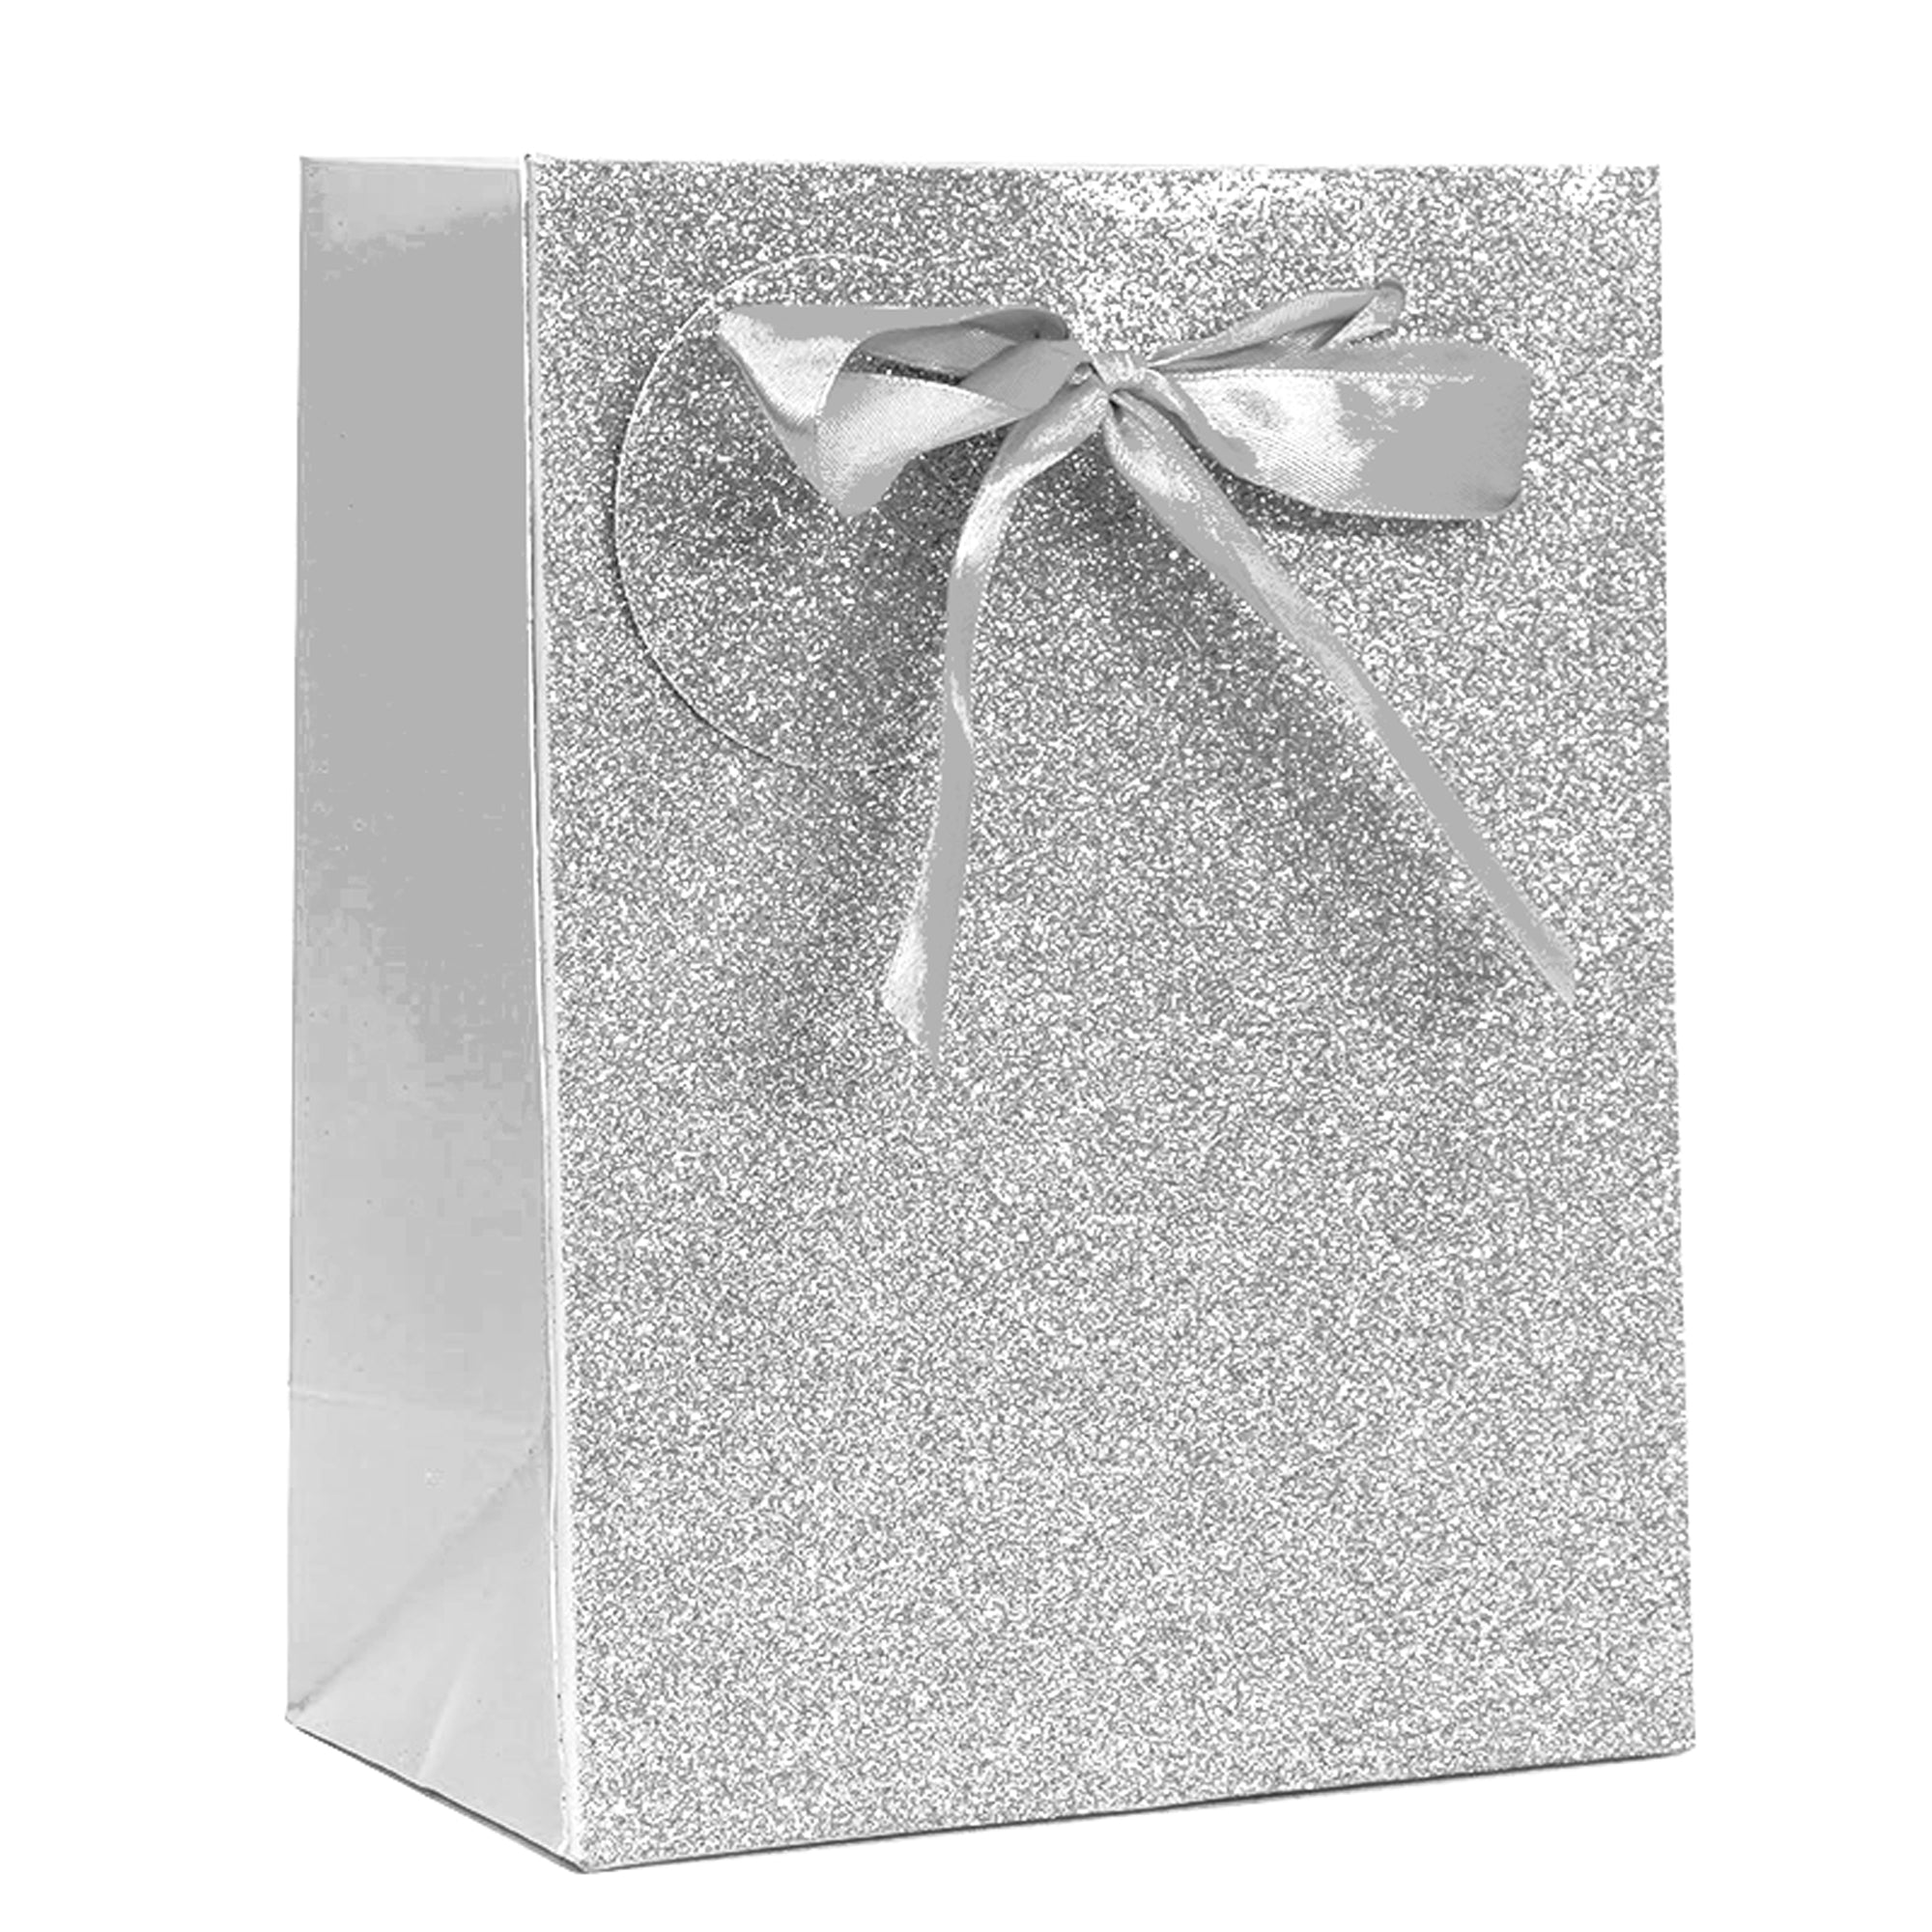 SILVER SPARKLE GLITTER LARGE GIFT BAG